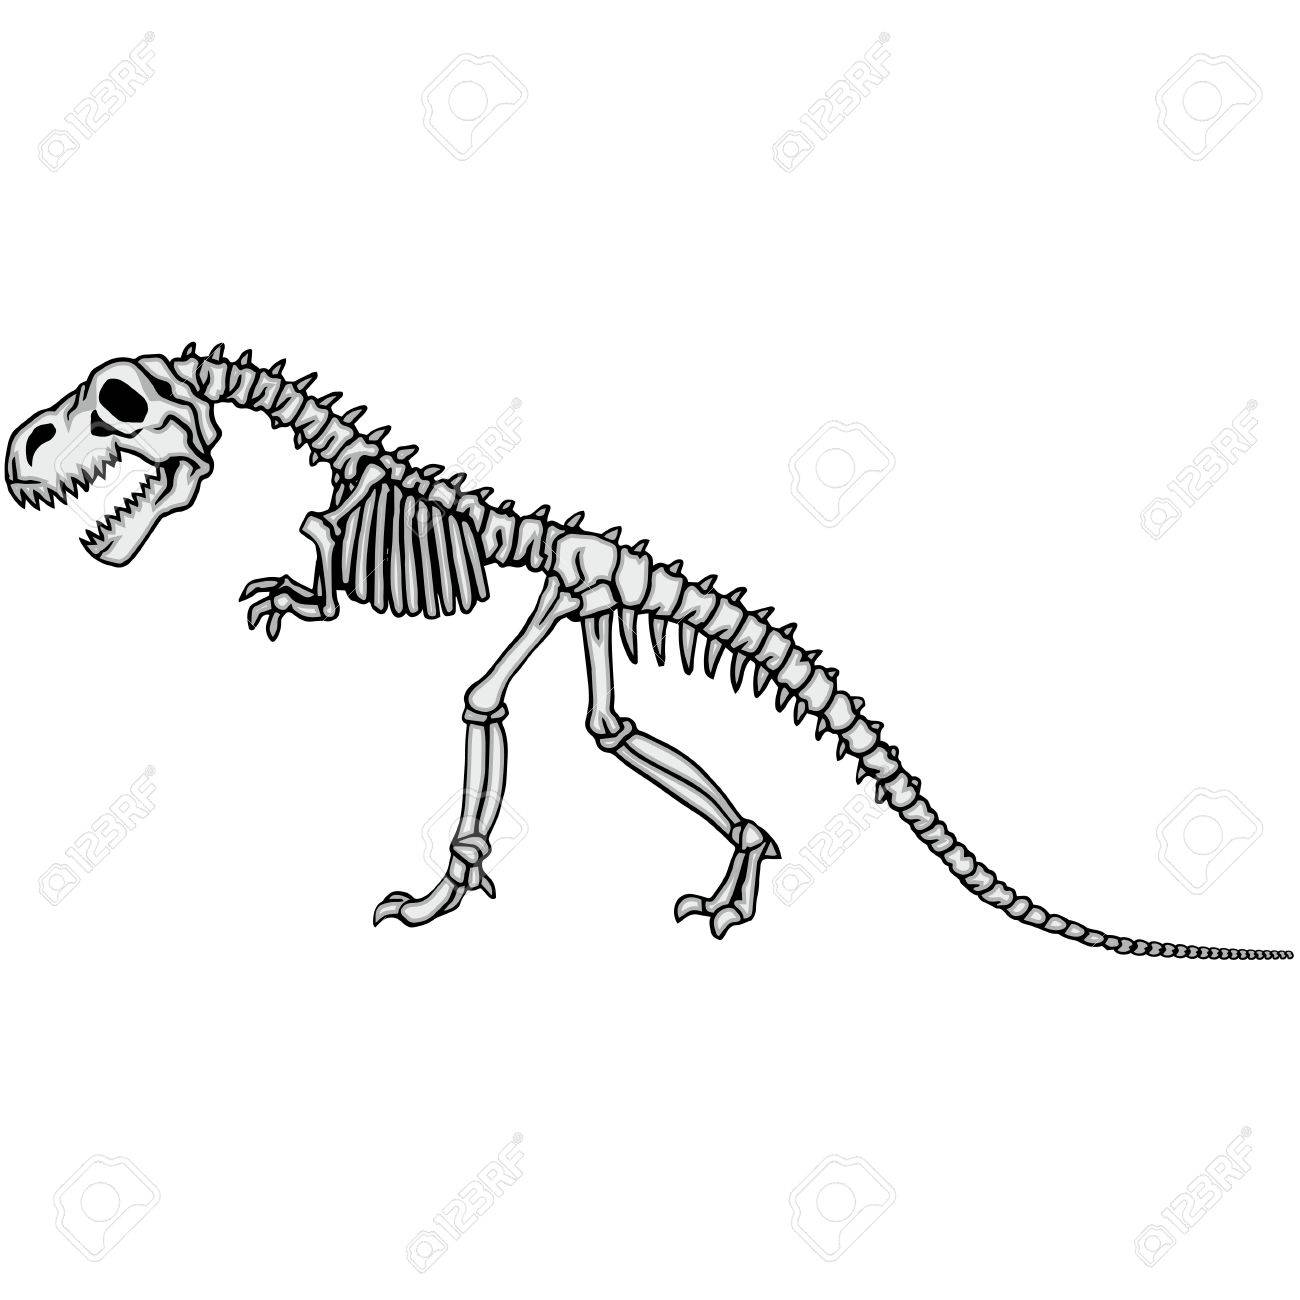 how to draw a dinosaur skeleton